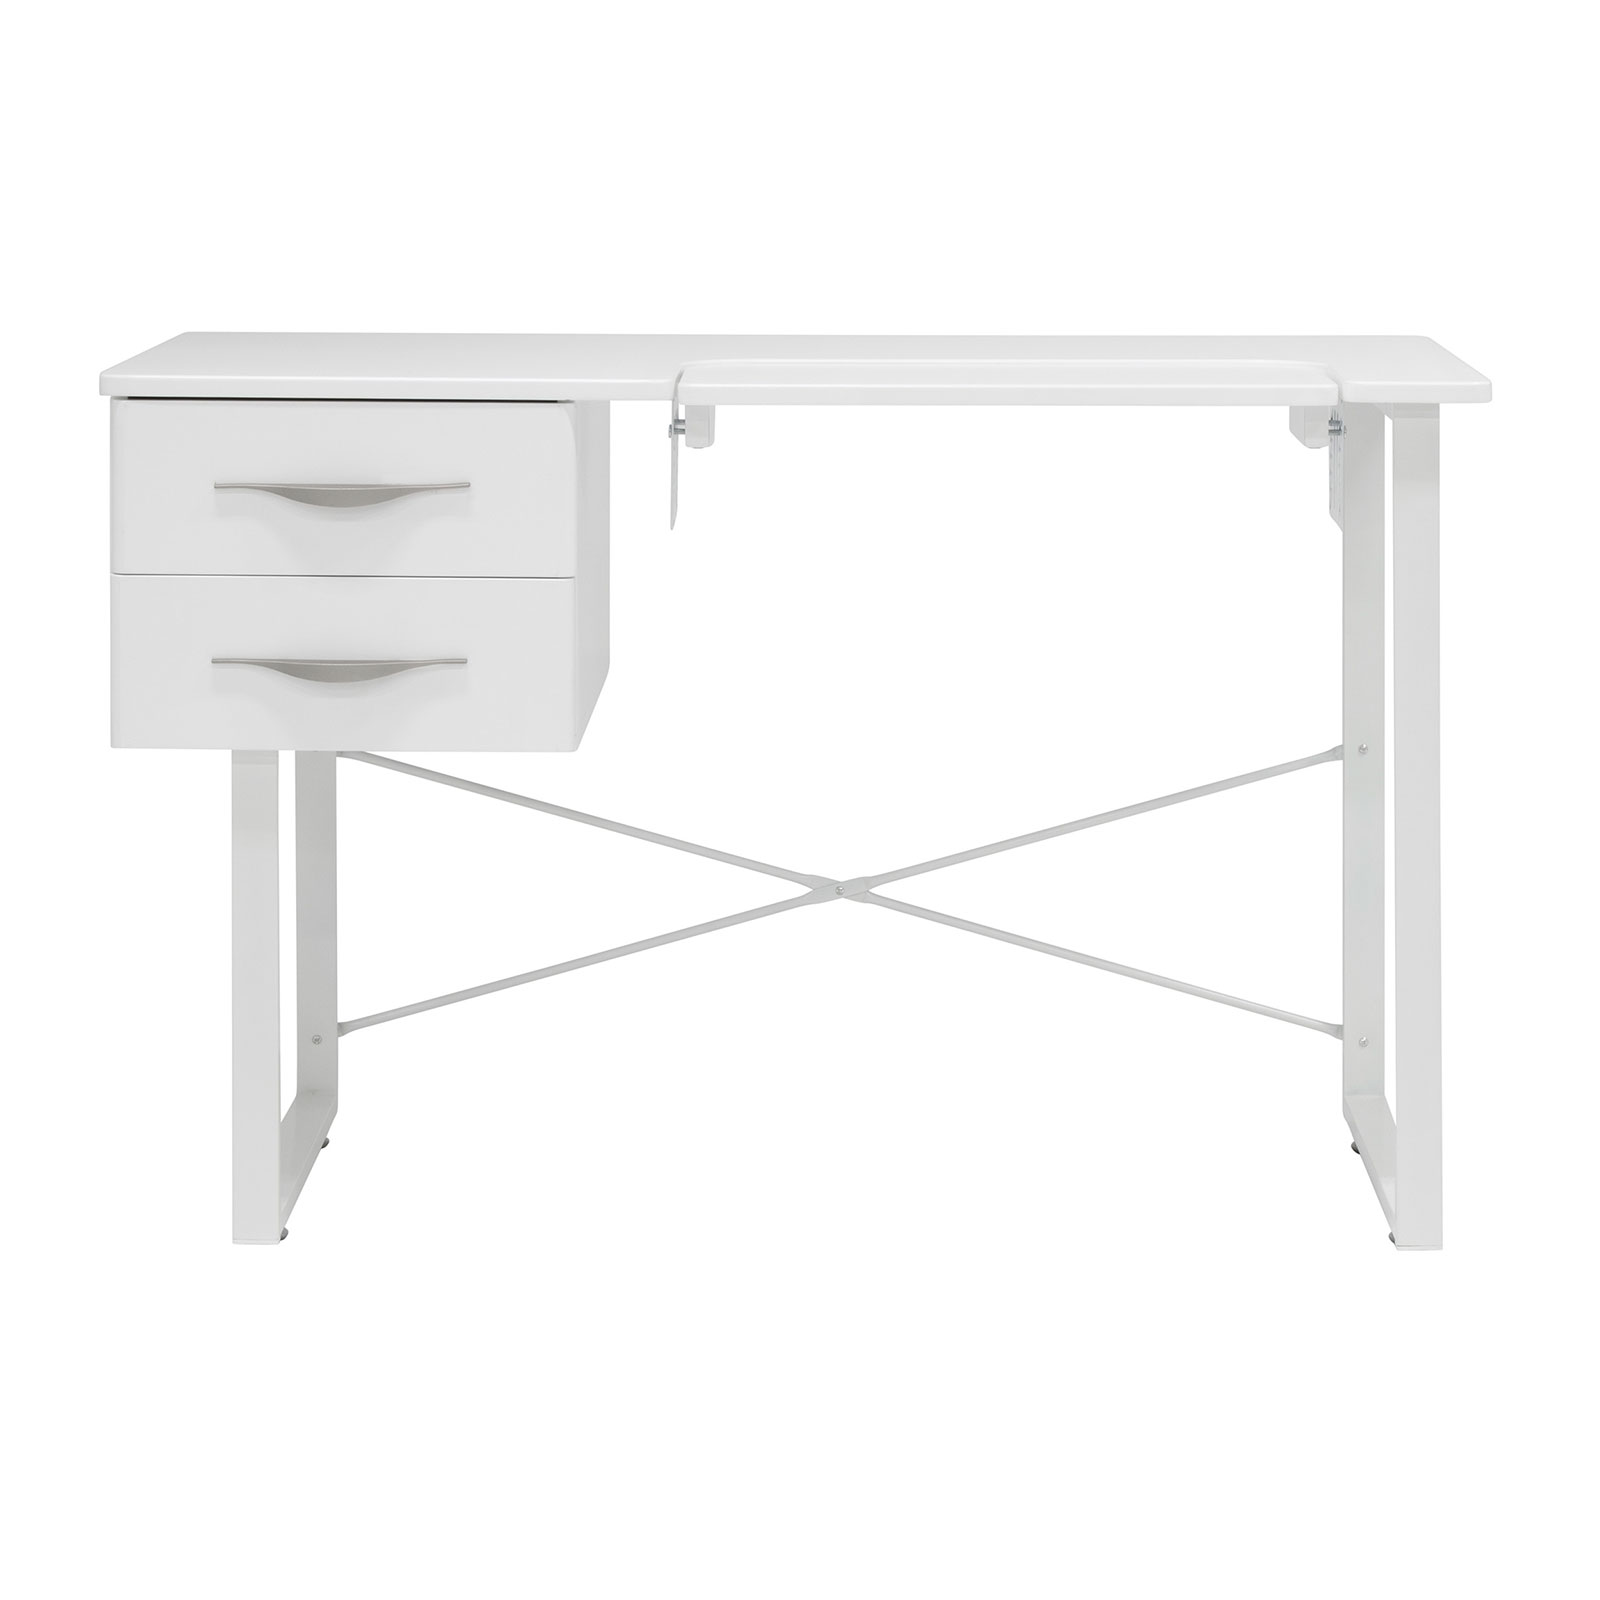 13398-Pro-Line-Sewing-Table-front-b